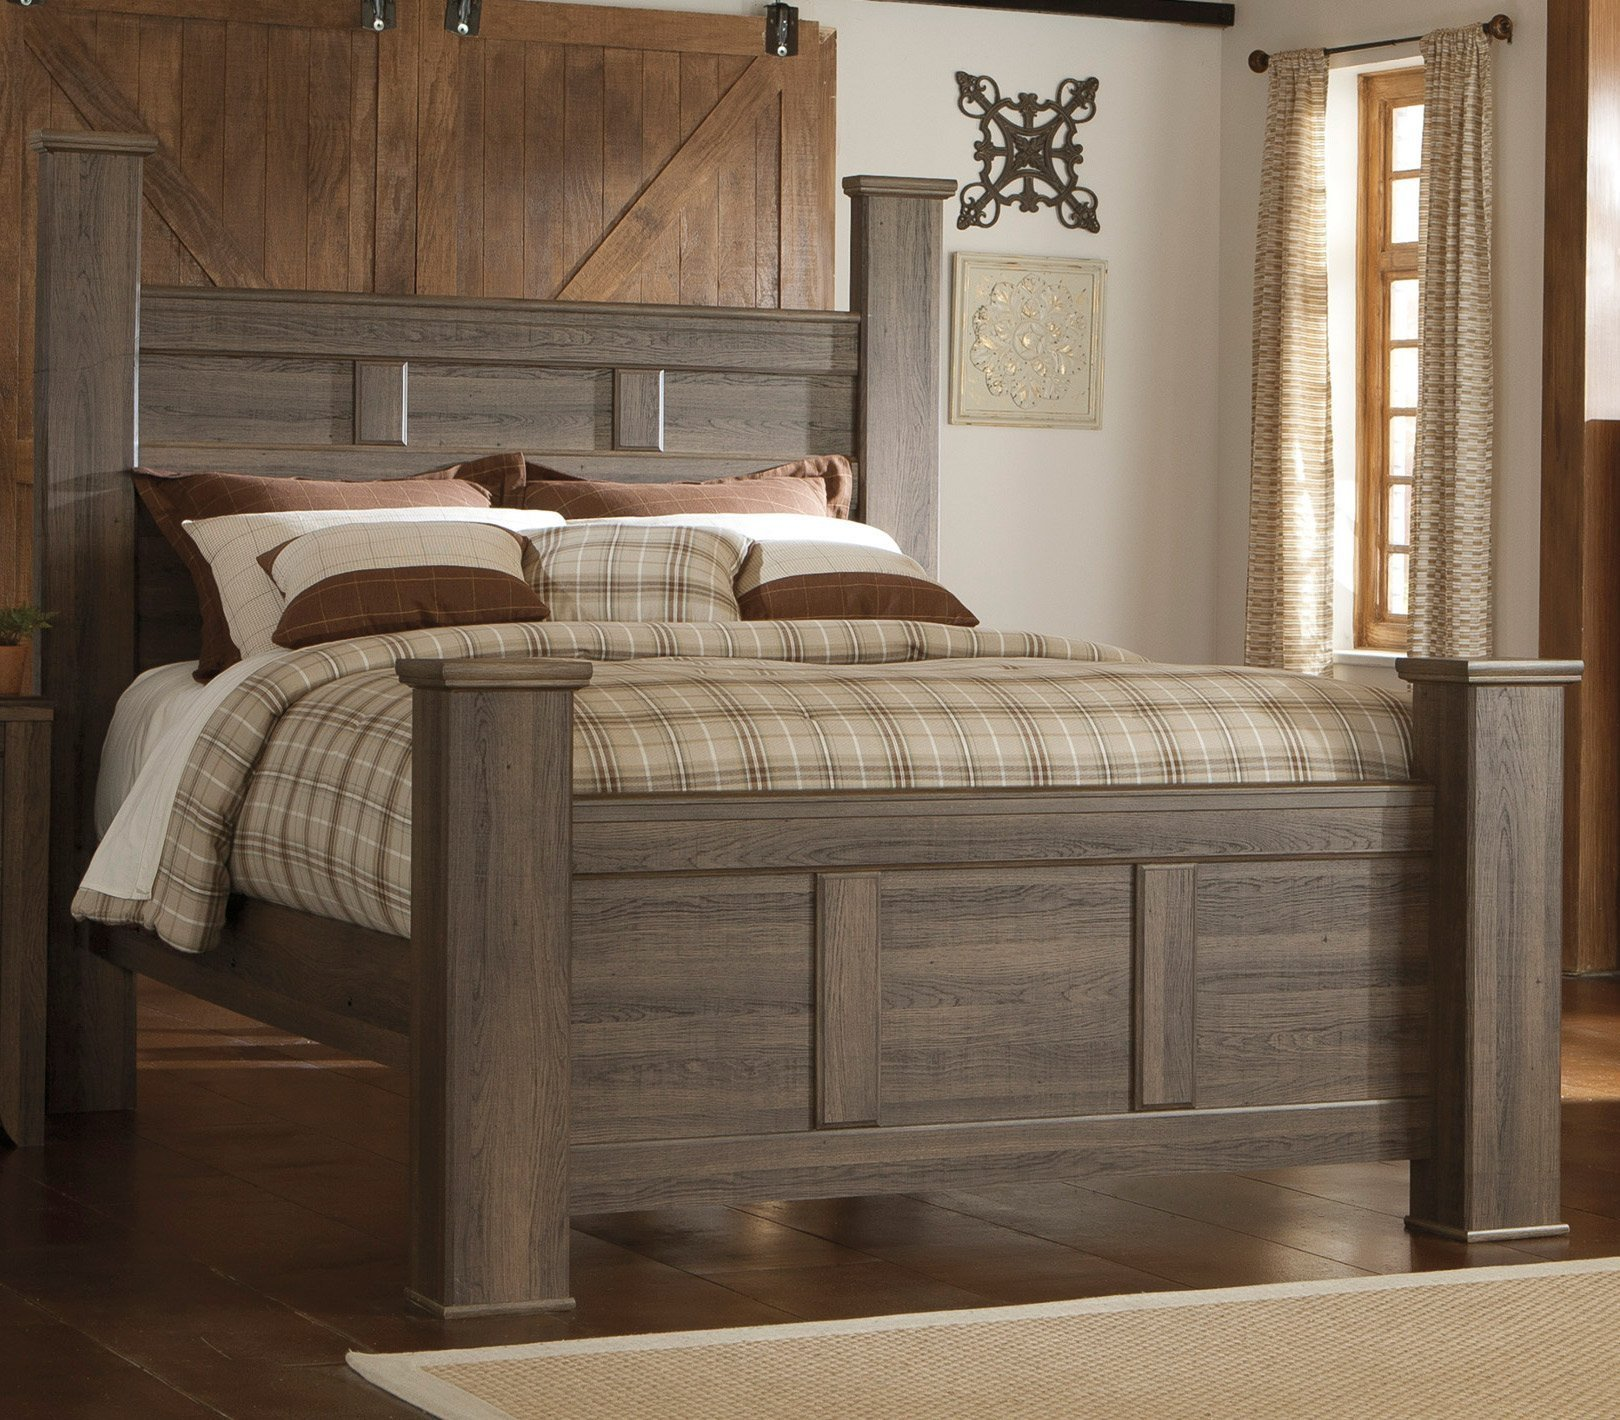 Best Driftwood Rustic Modern 6 Piece Queen Bedroom Set Fairfax Rc Willey Furniture Store With Pictures